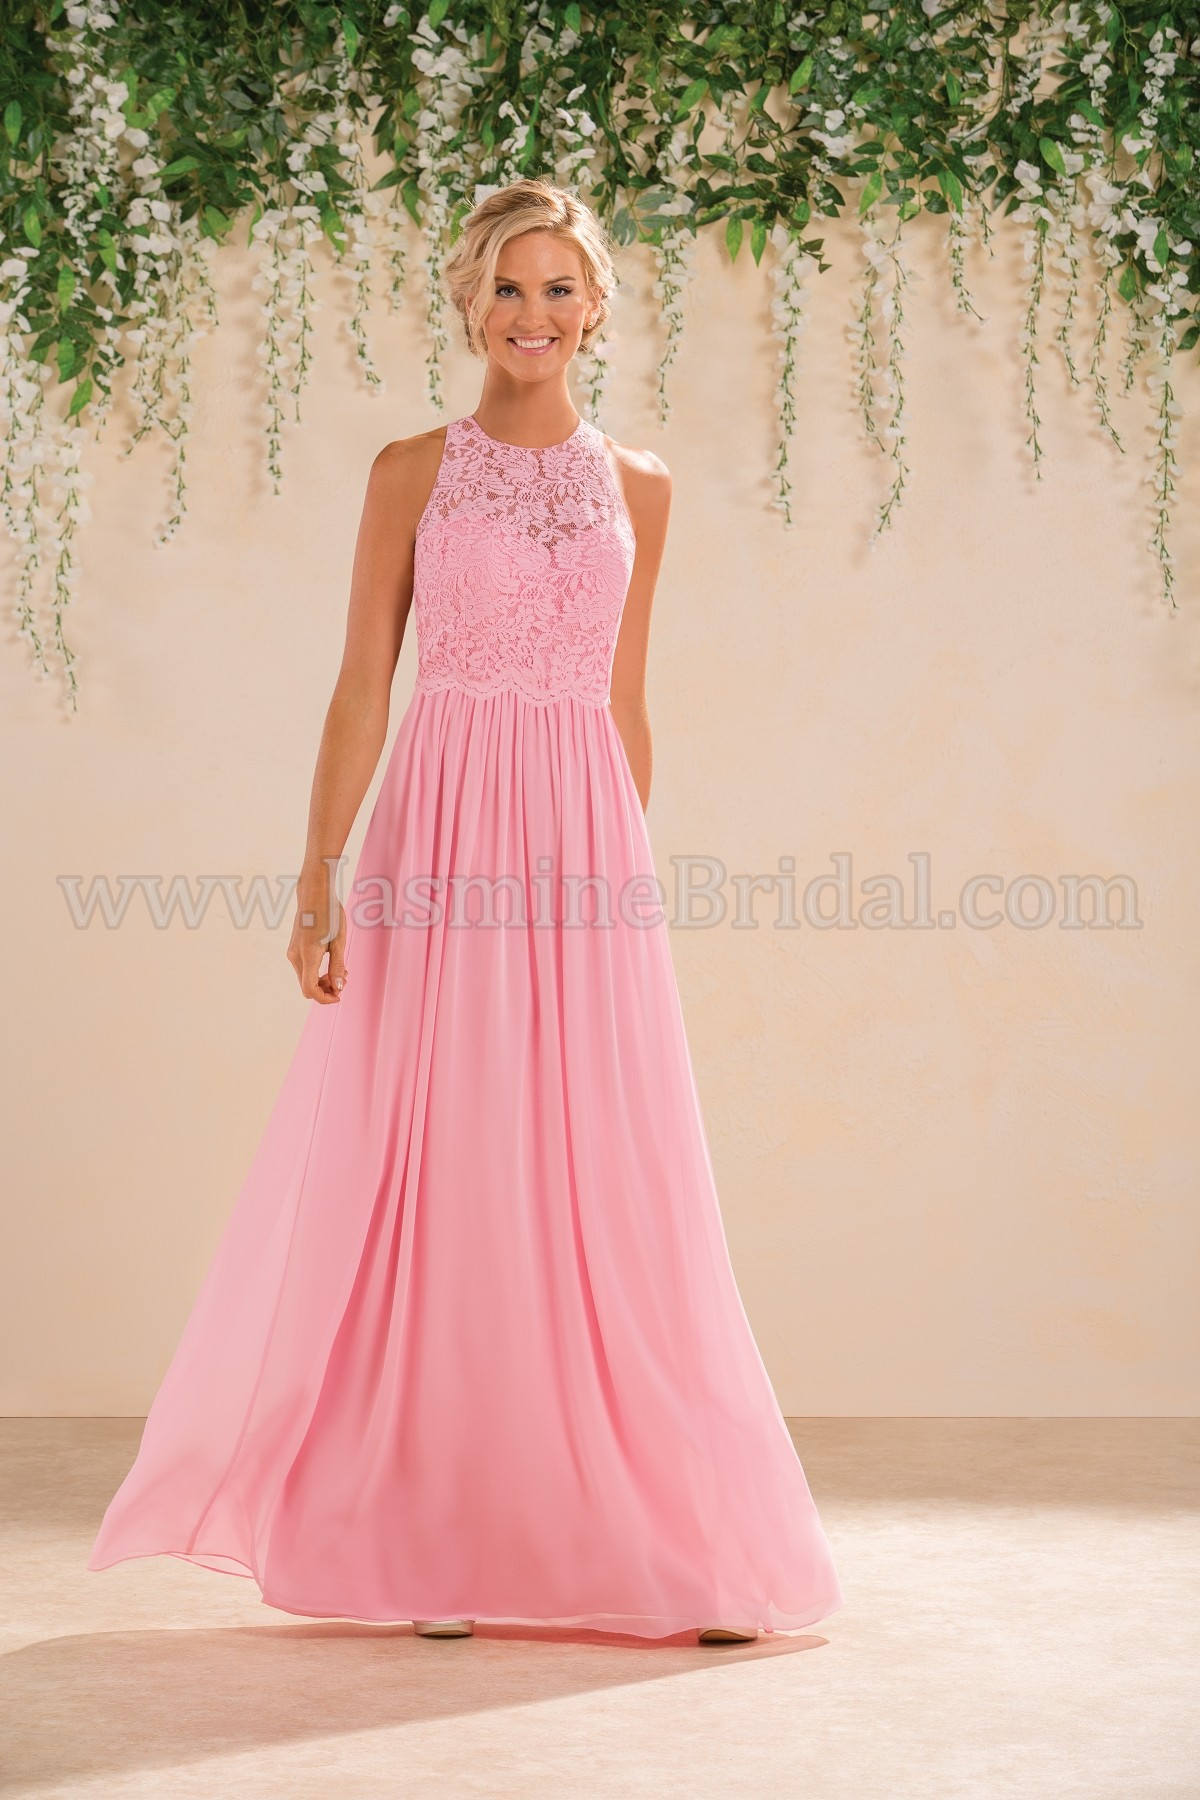 bridesmaid-dresses-B183017-F